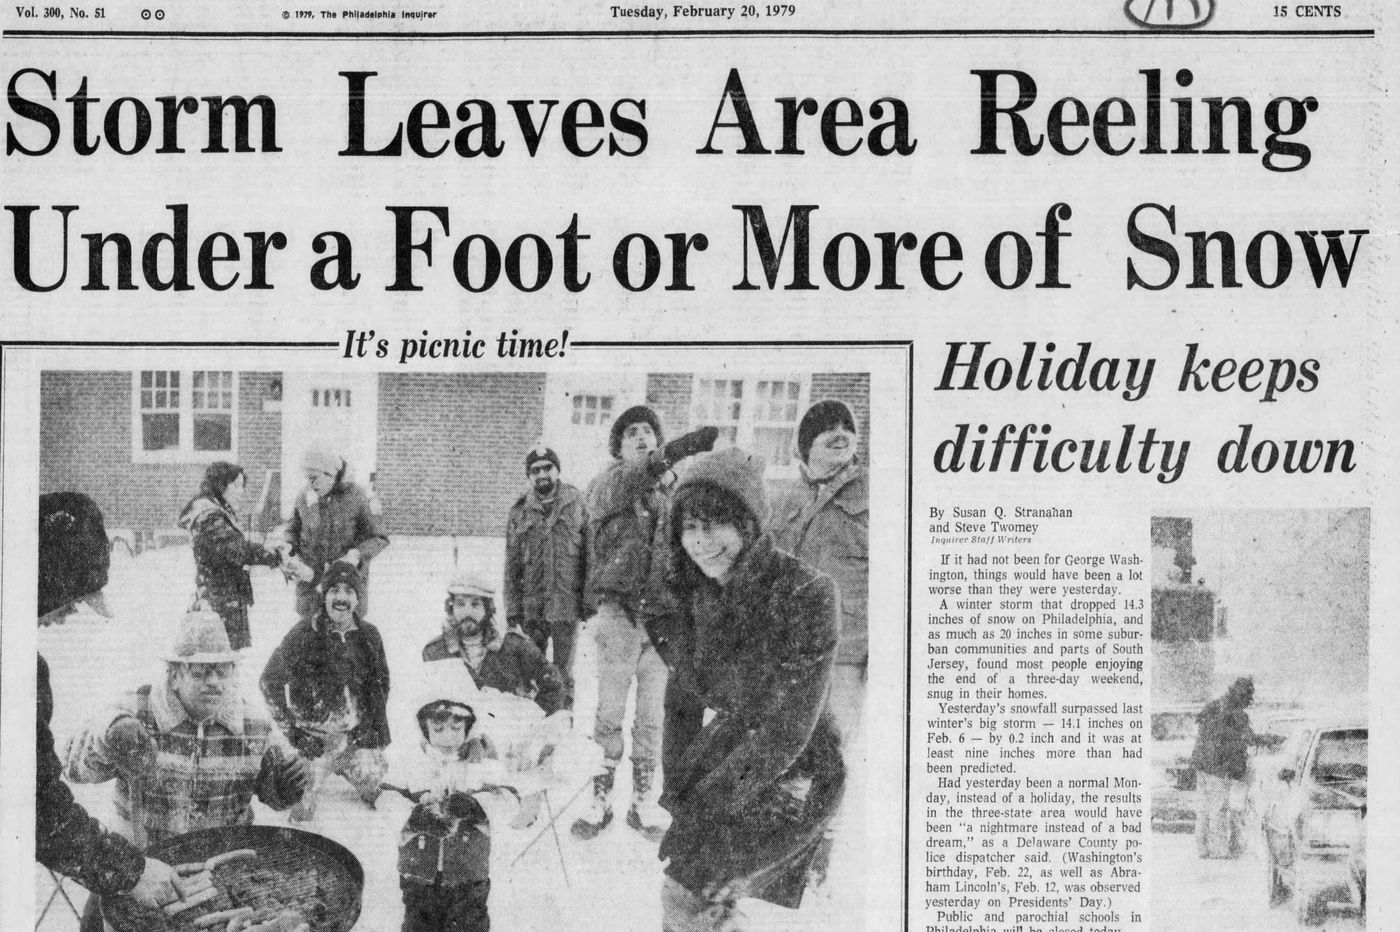 Surprise! The 1979 Presidents' Day mega-snowstorm that no one saw coming.